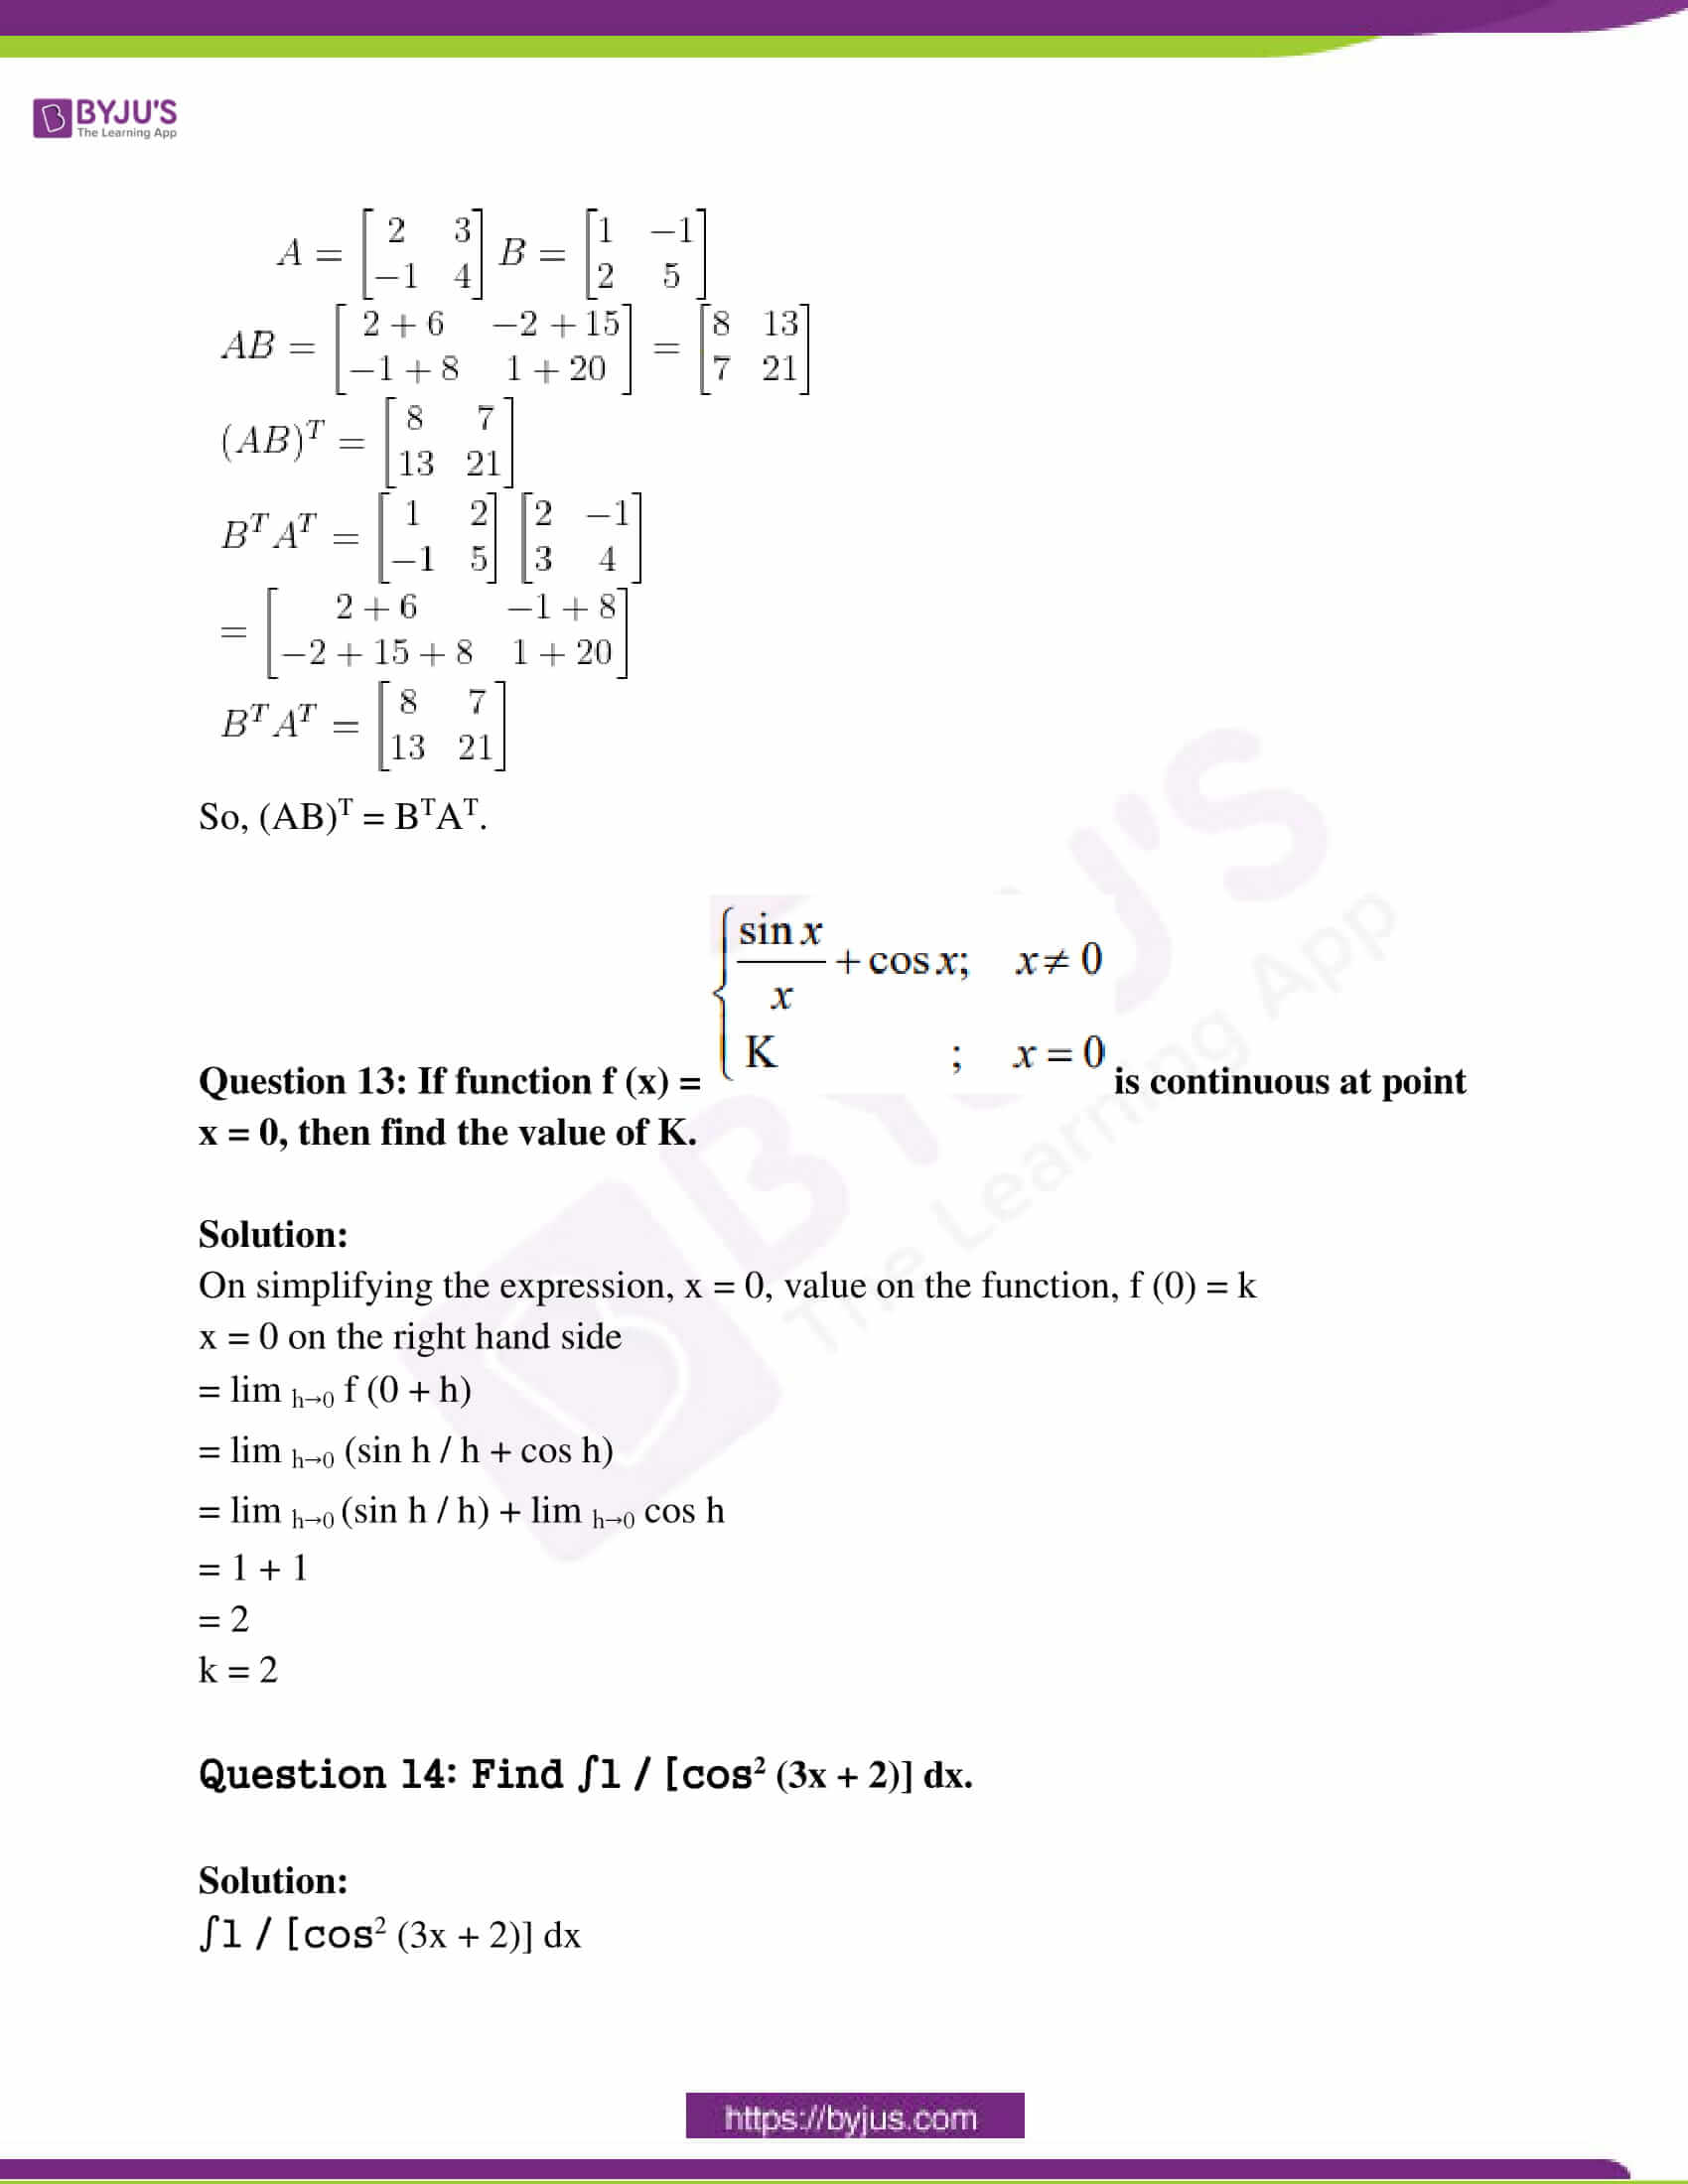 rajasthan class 12 exam question paper solutions march 2019 06